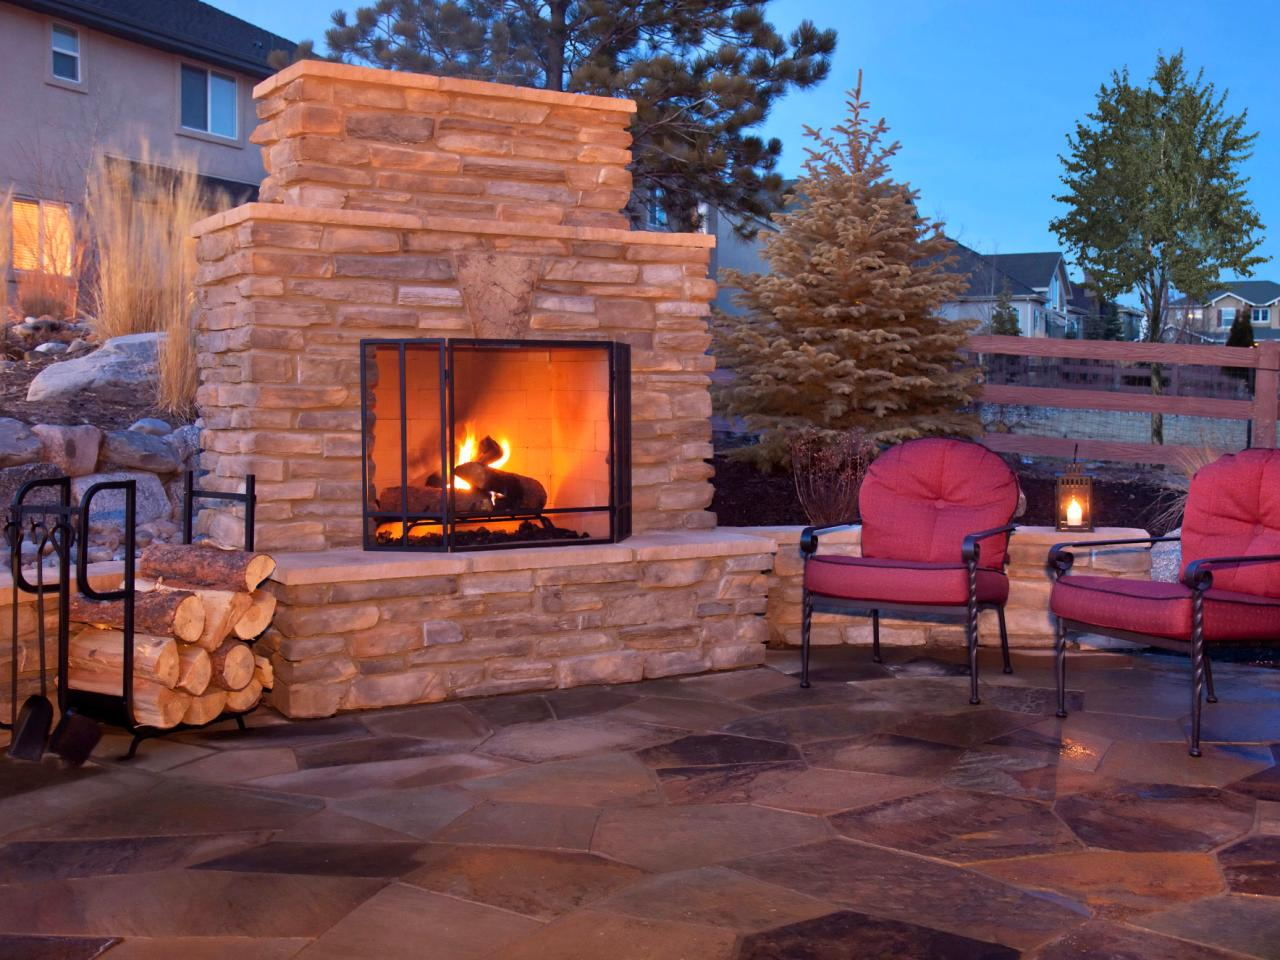 How to plan for building an outdoor fireplace outdoor for Outdoor patio fireplace ideas